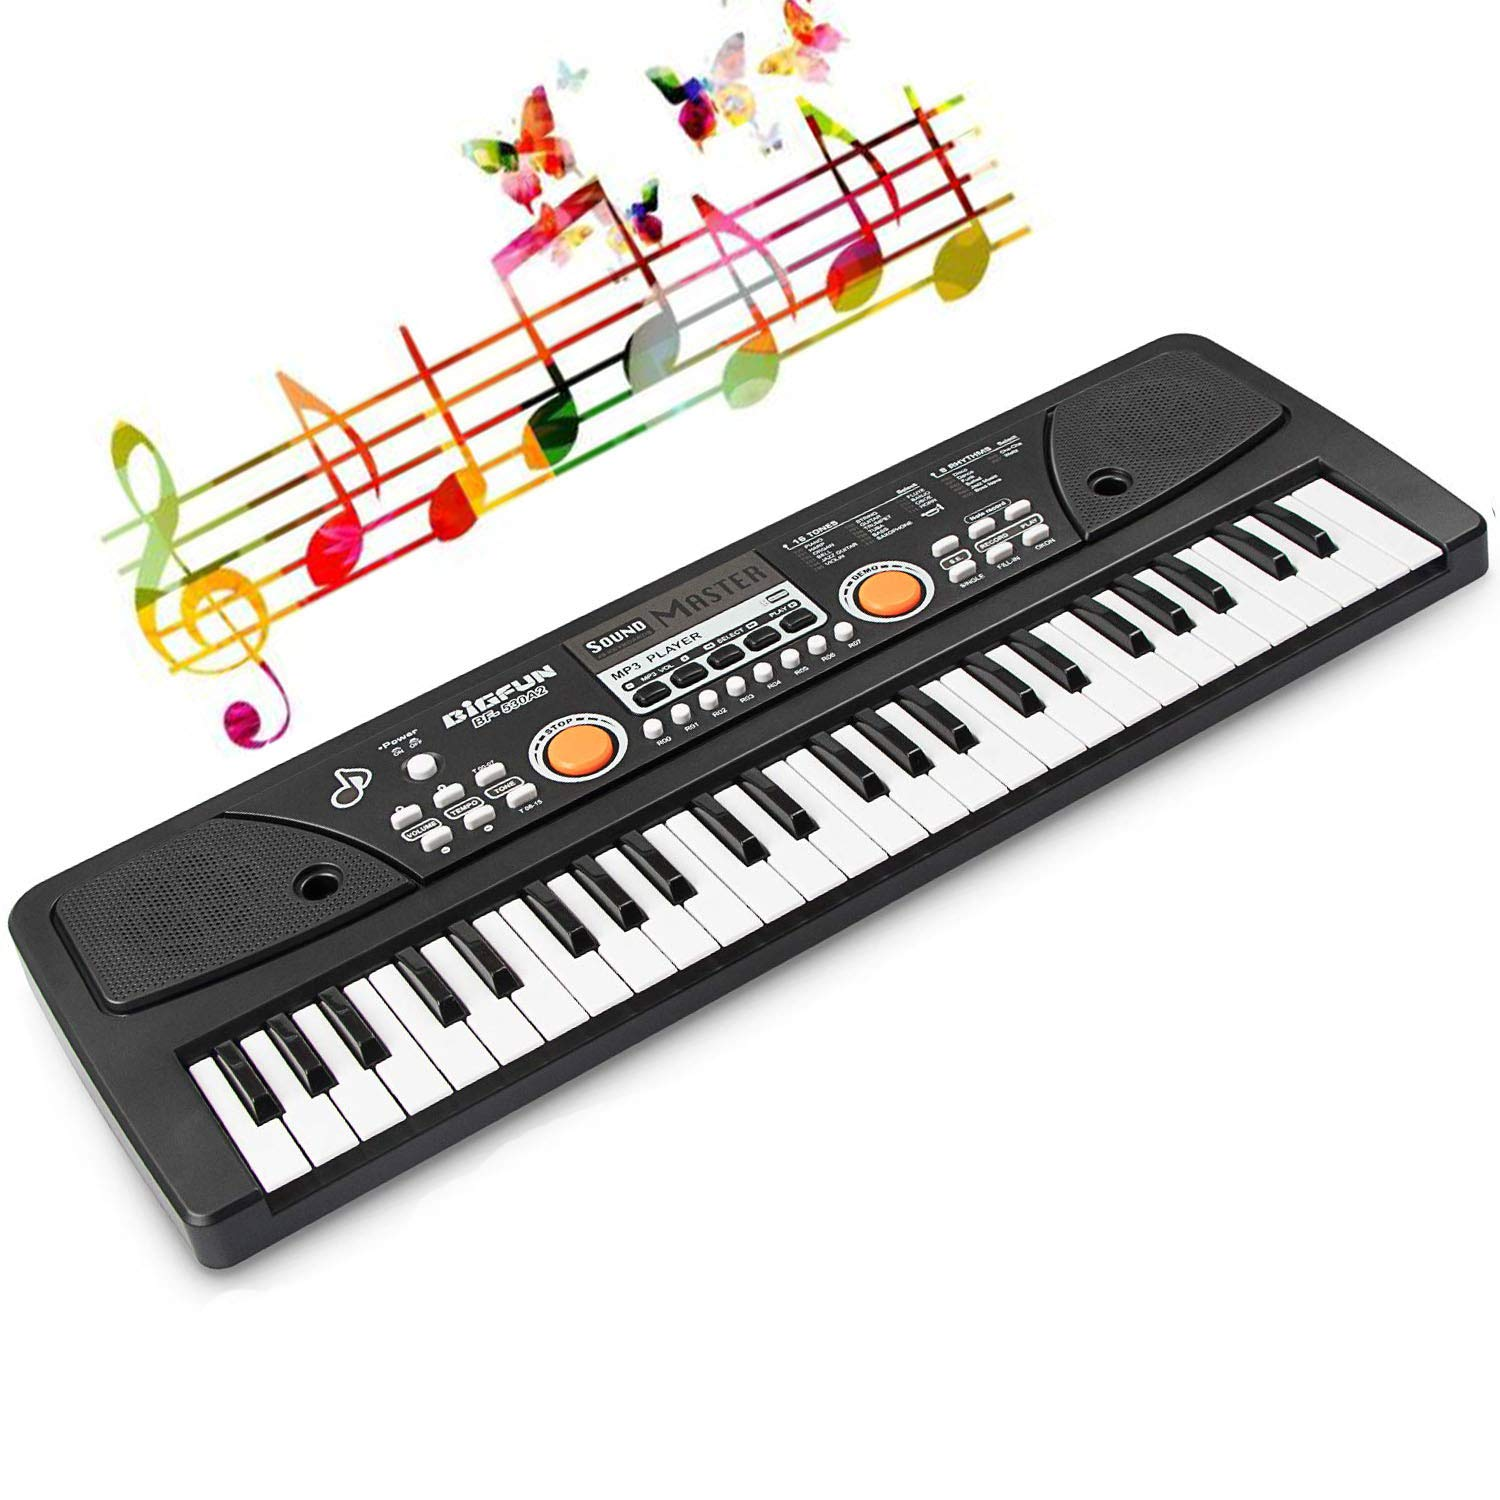 LYBALL Kids Keyboard 49-Key Piano LED Display Electronic Rechargable Piano Keyboard with Microphone Multi Functional Piano for Kids 20.86 Inch (Black) by LYBALL